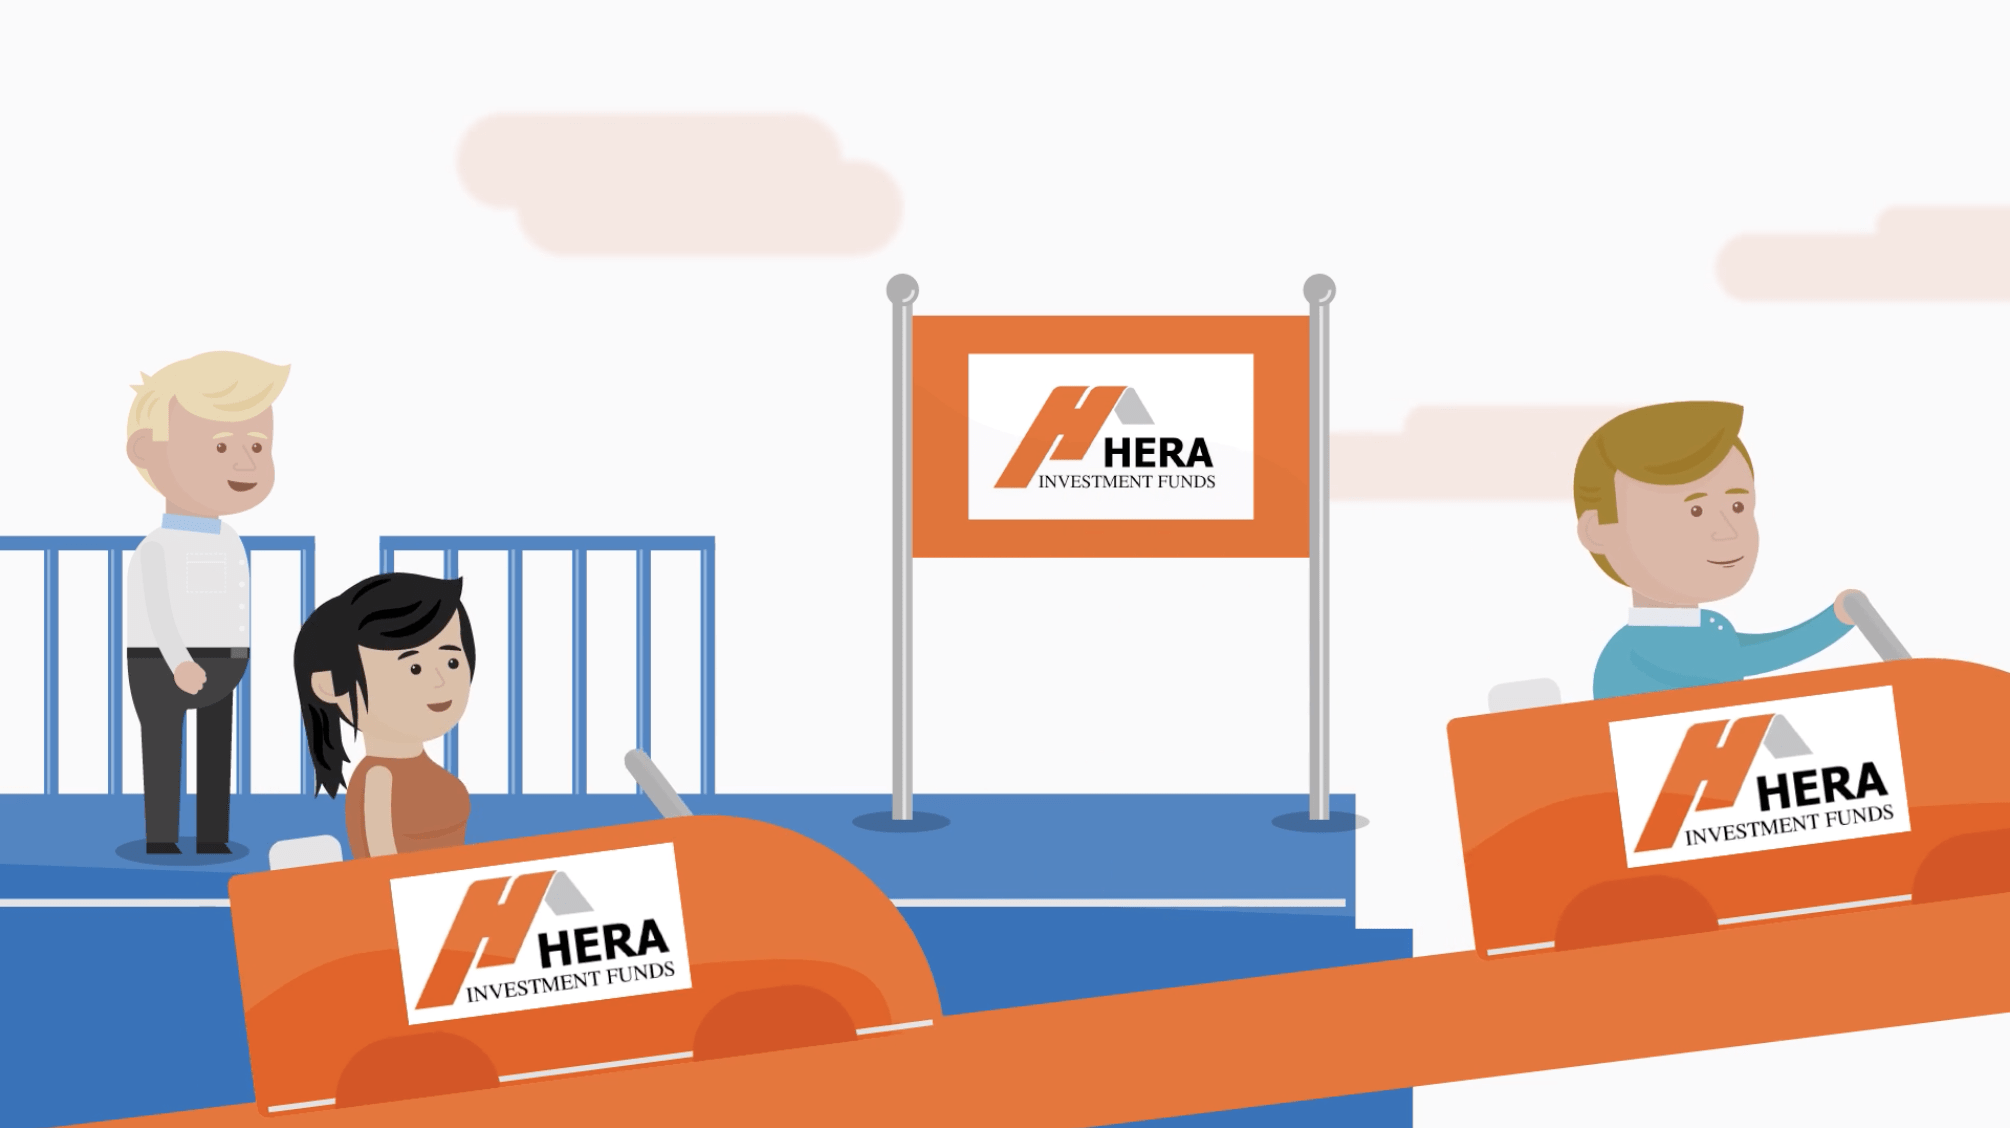 Hera Investment Funds